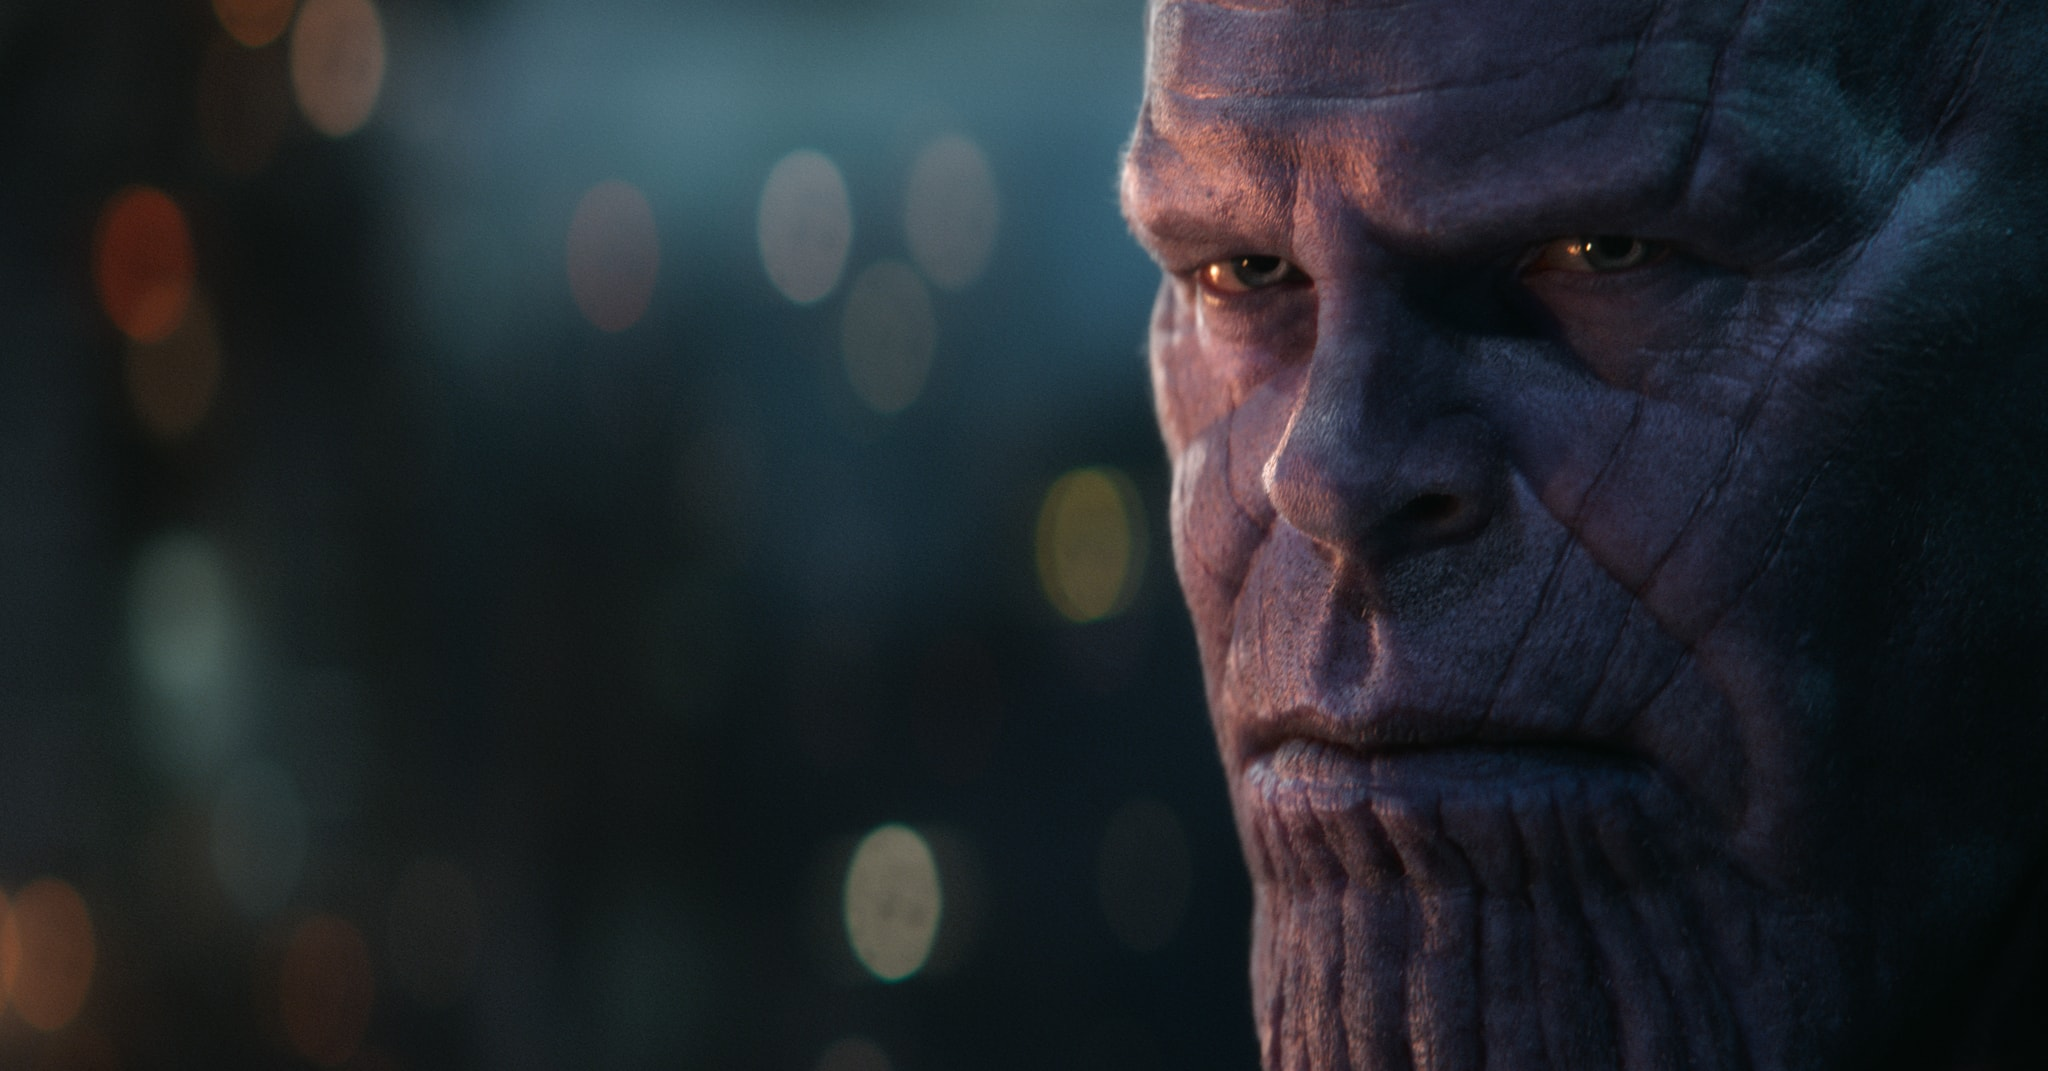 The Avengers: Infinity War directors clarify a previous statement made surrounding a certain character's death.